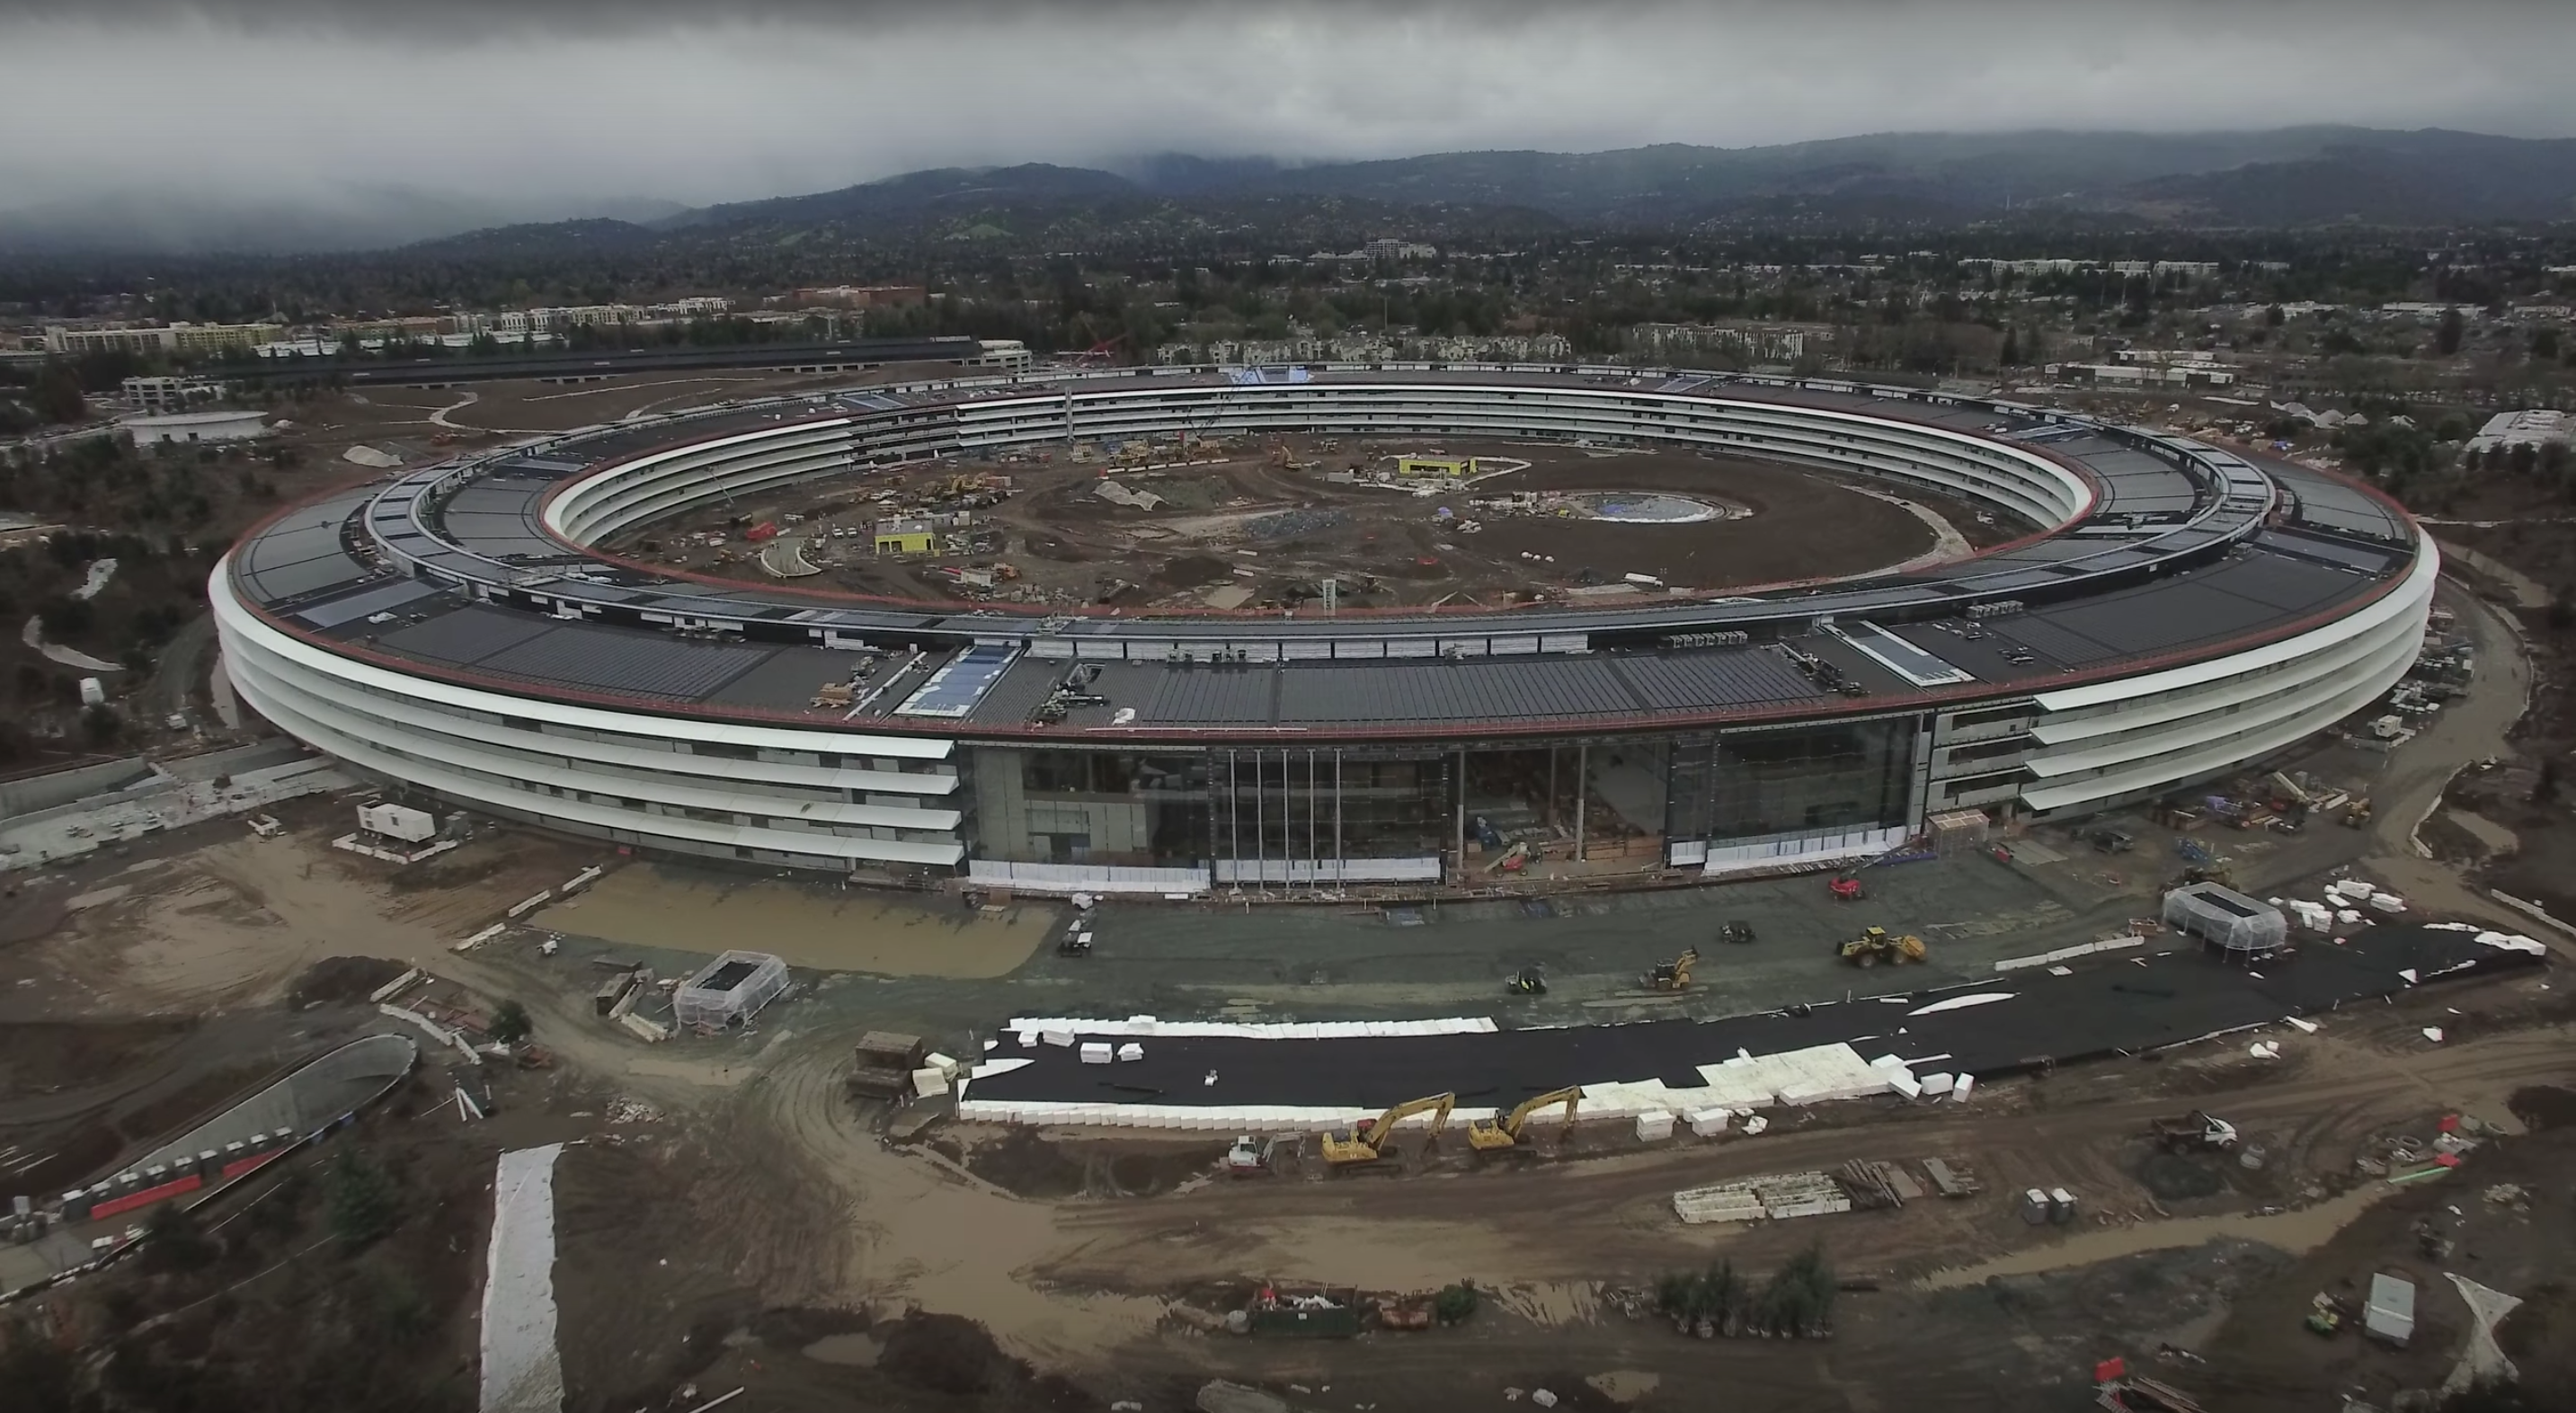 New drone footage shows the construction of Apple Campus 2, which is designed to look like a spaceship.